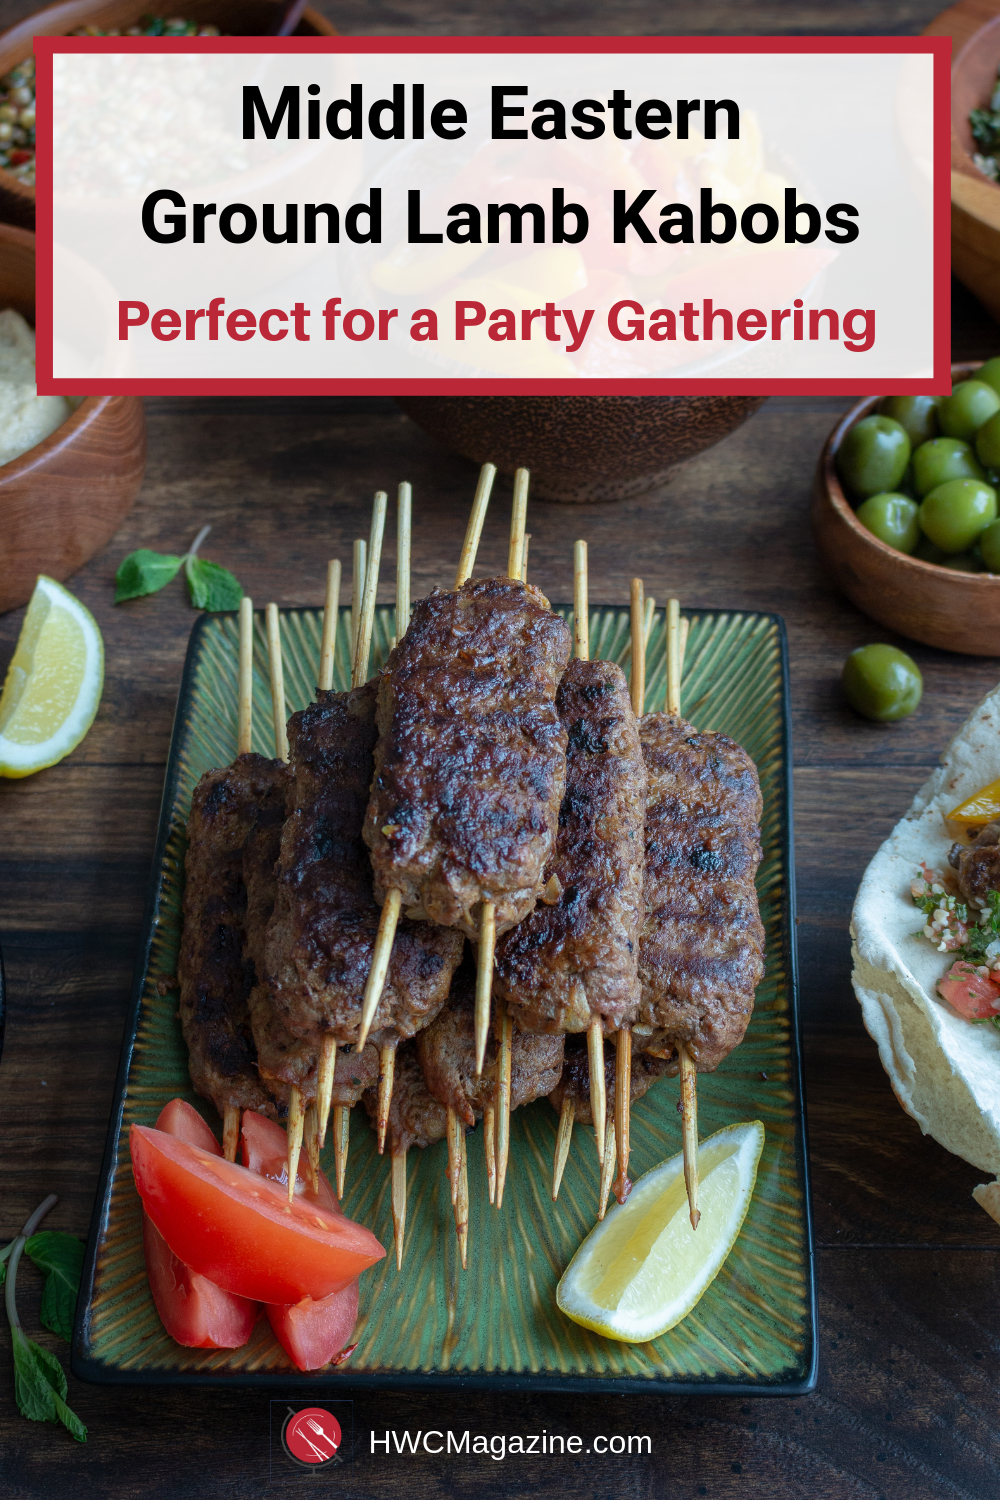 Middle Eastern Ground Lamb Kabobs are juicy bites of delicious kofta packed with fresh herbs, citrus, spices and grilled to perfection. Perfect for a party! #kofta #middleeastern #kabob #grilled #easyrecipe #glutenfree #dairyfree #partyfood #partyideas / https://www.hwcmagazine.com